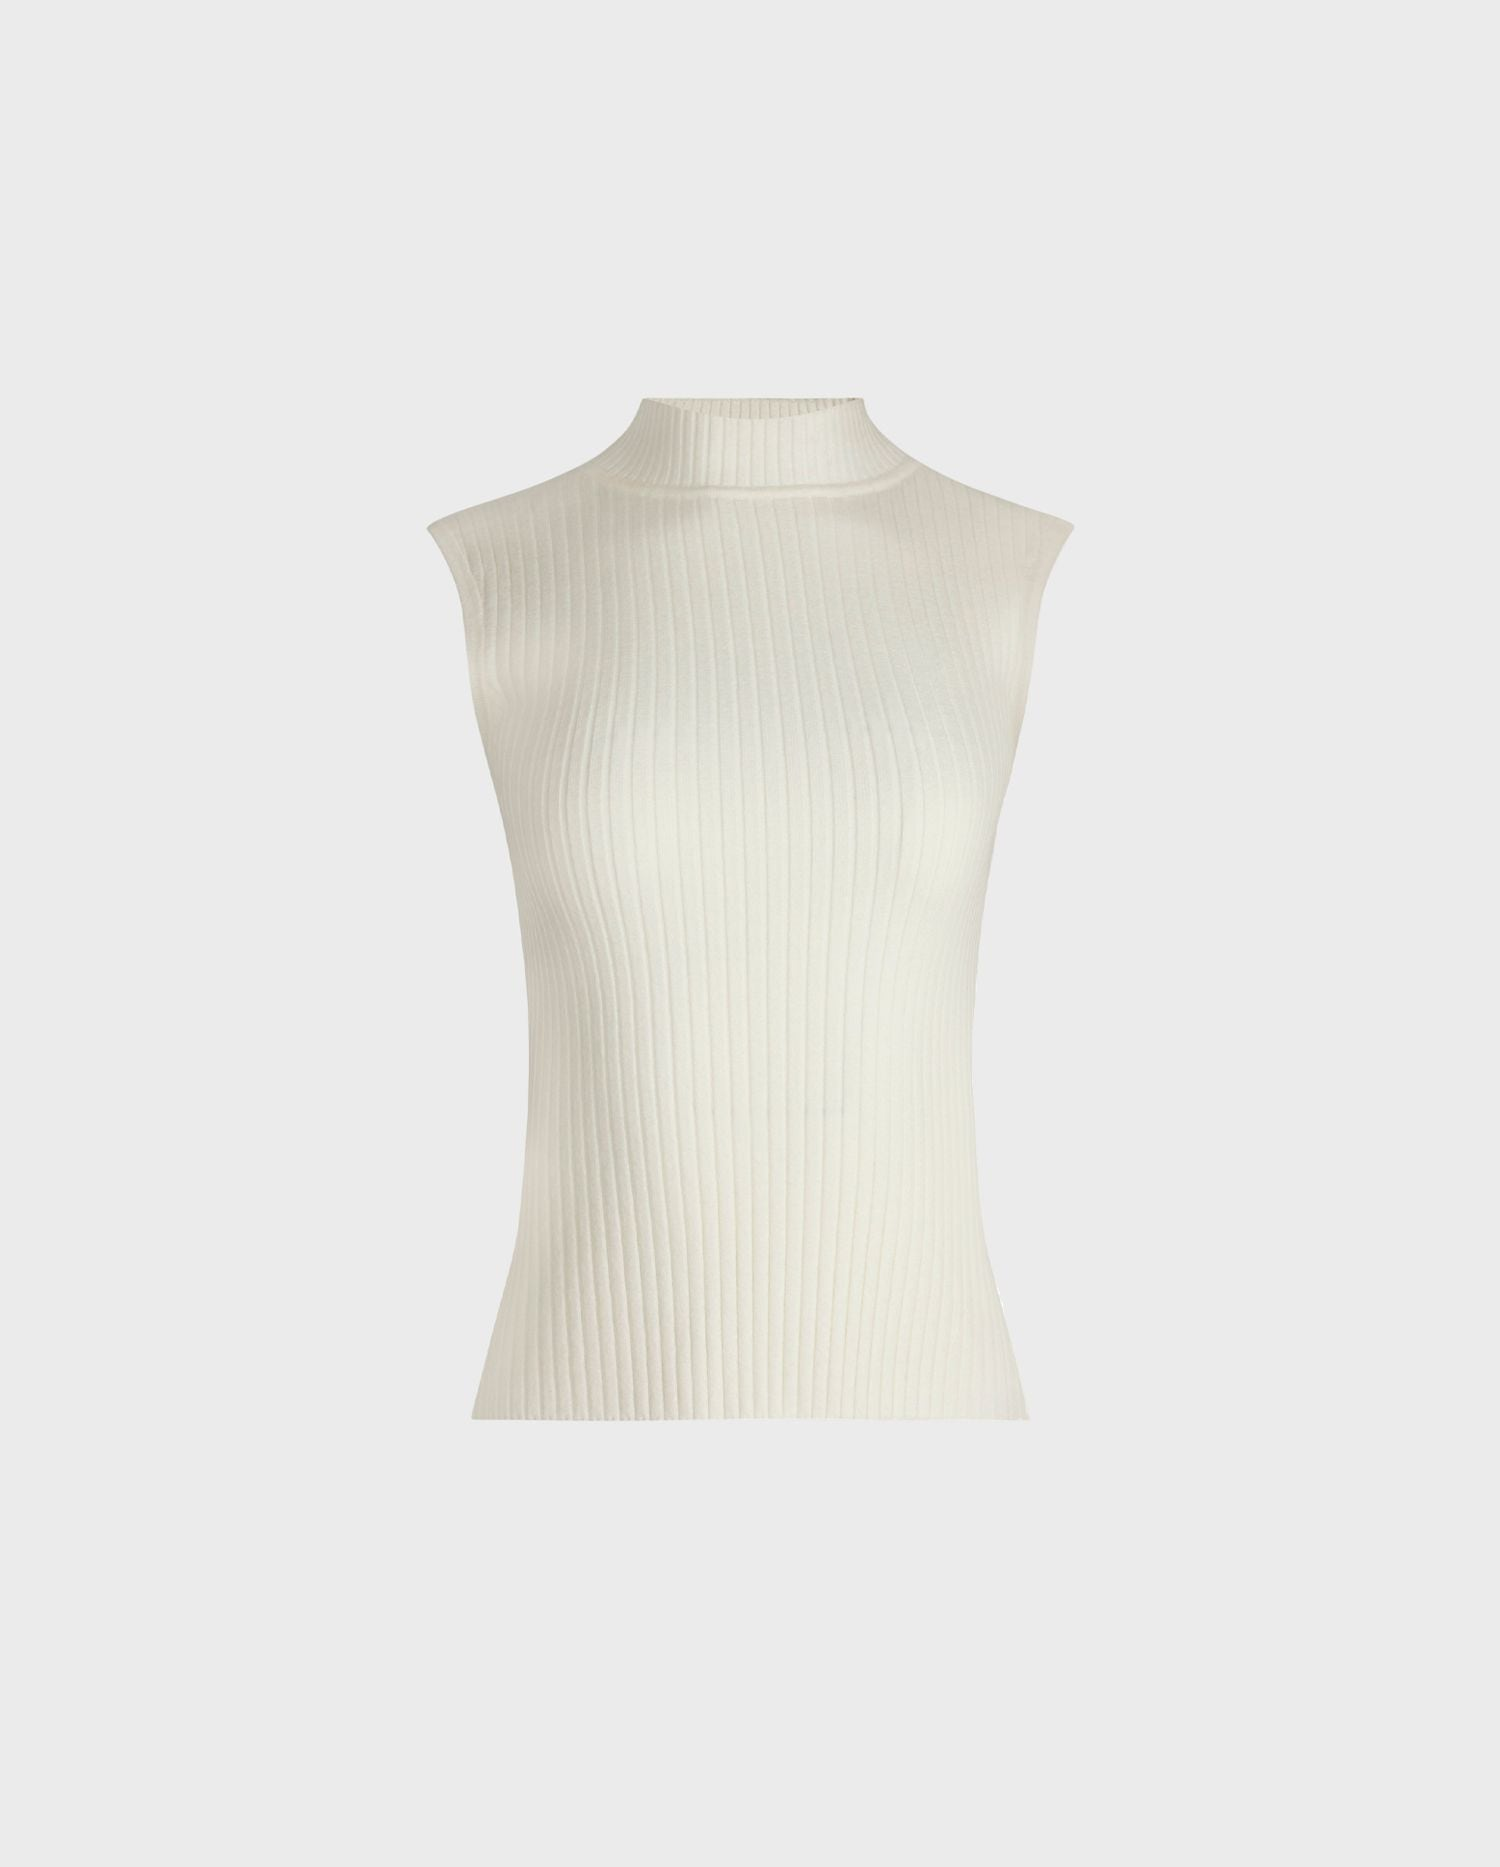 The SOLO mockneck top is the perfect layering peice to add to your Fall wardrobe